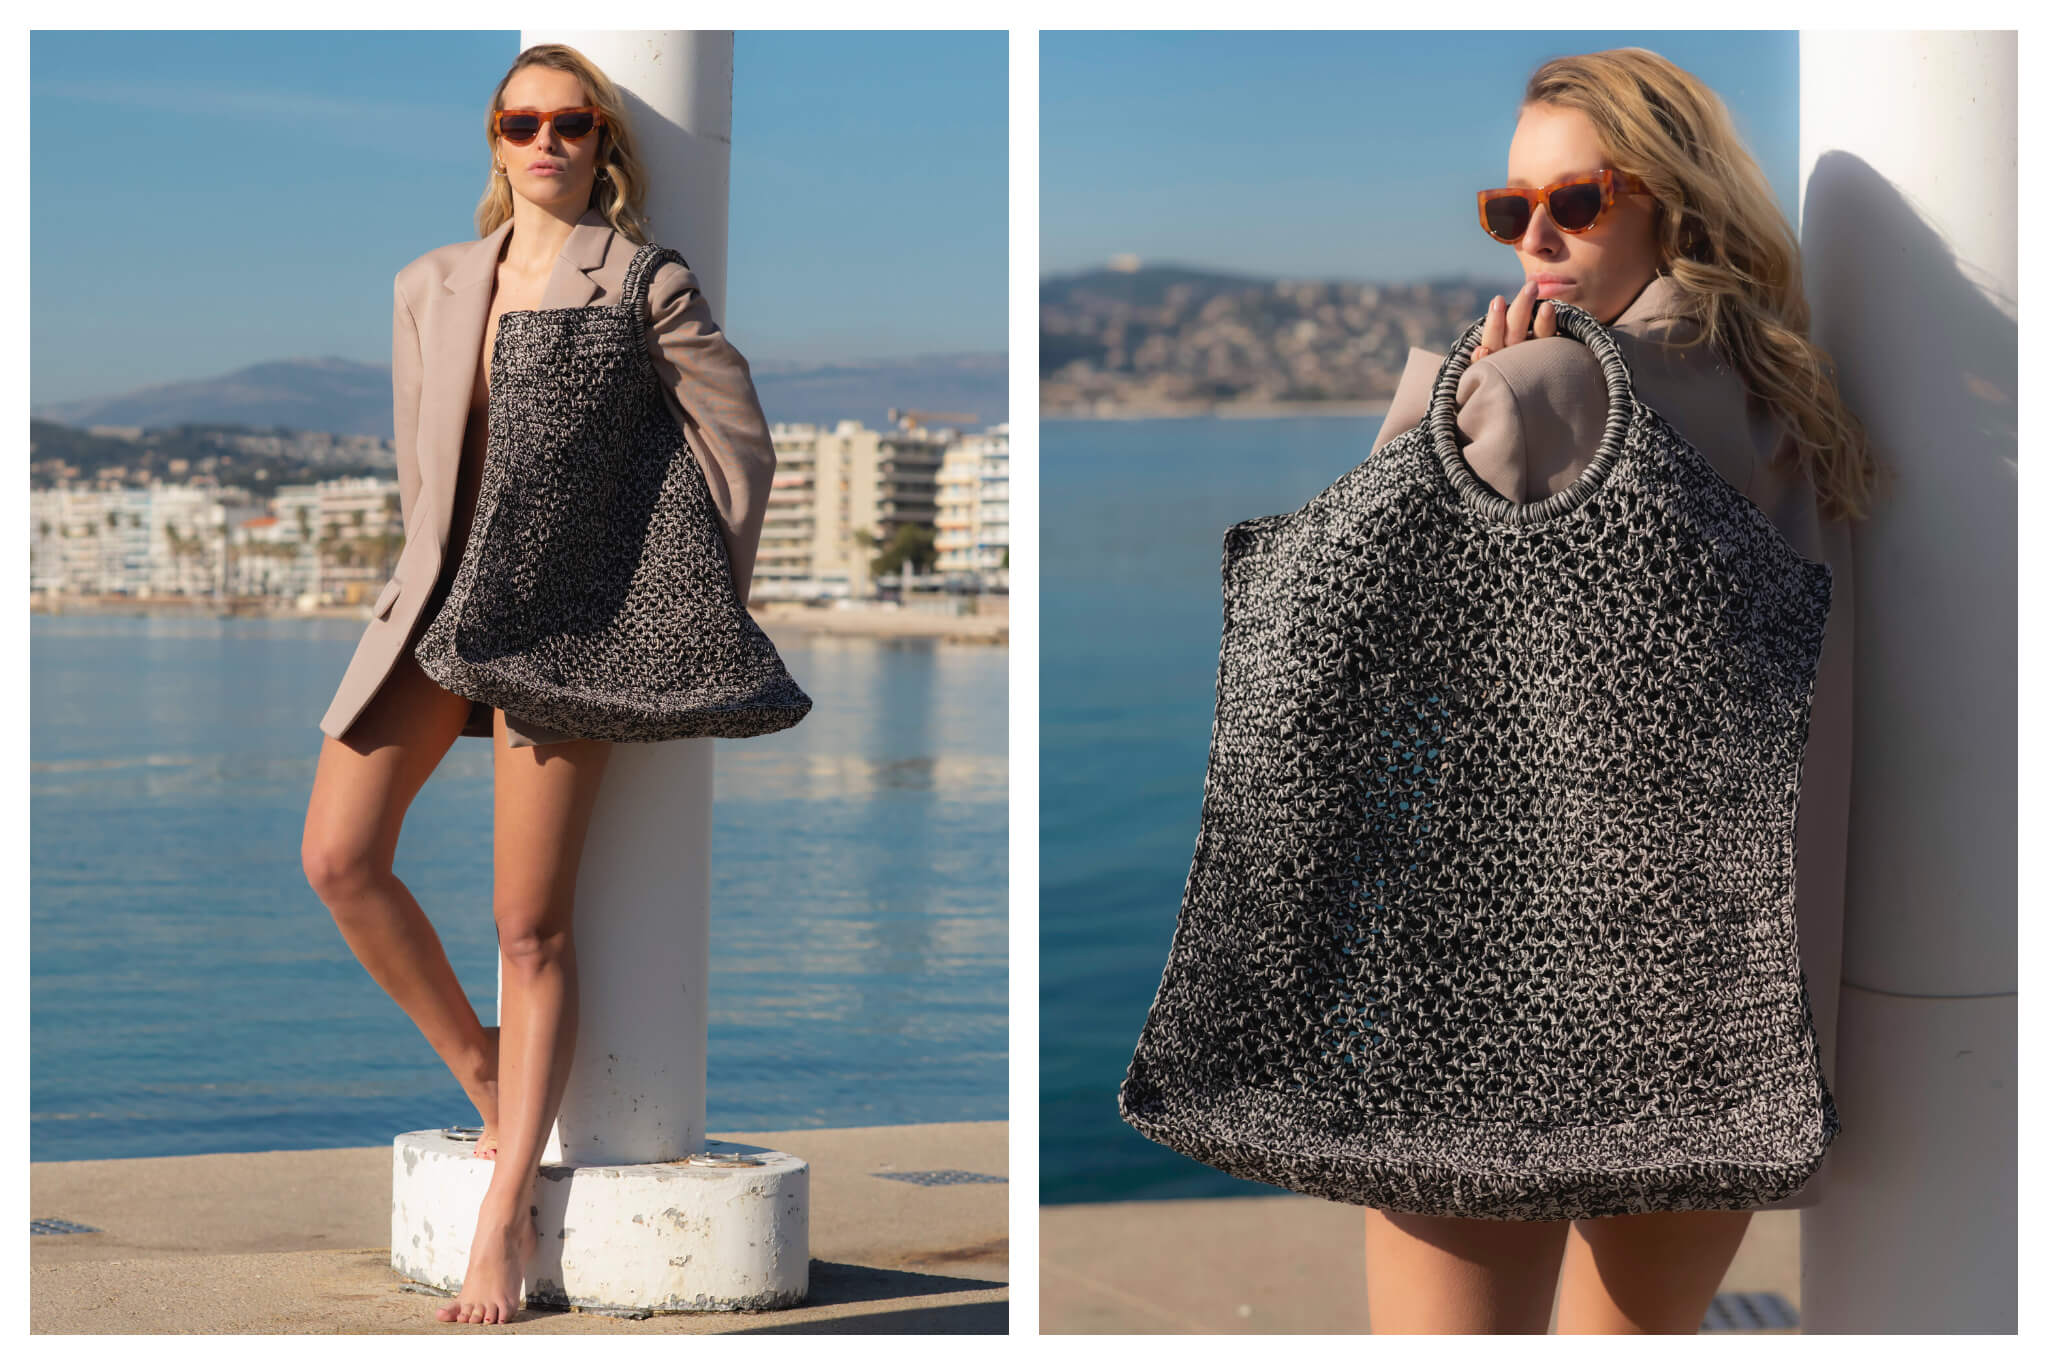 A model in a blazer and red sunglasses models a large bag from Mizele in front of the ocean on a sunny day.